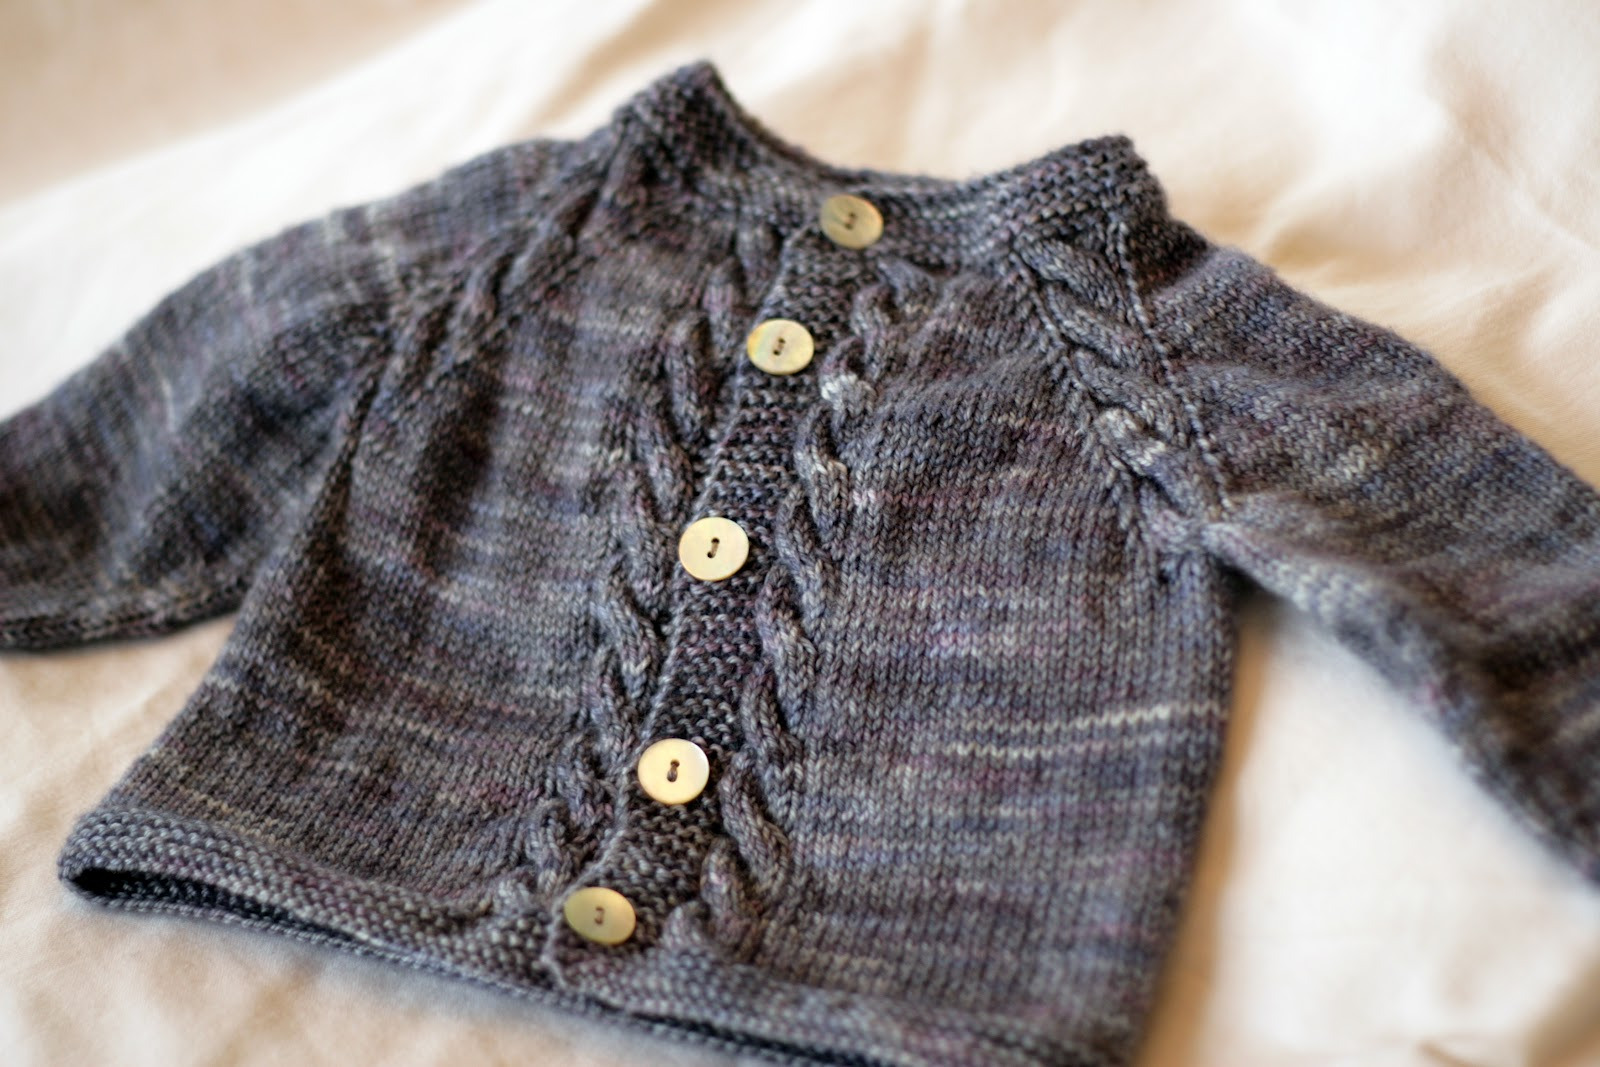 Free Babies Knitting Patterns For Cardigans : KATE PRESTON HANDKNITS /BLOG: The Sunnyside Baby Cardigan